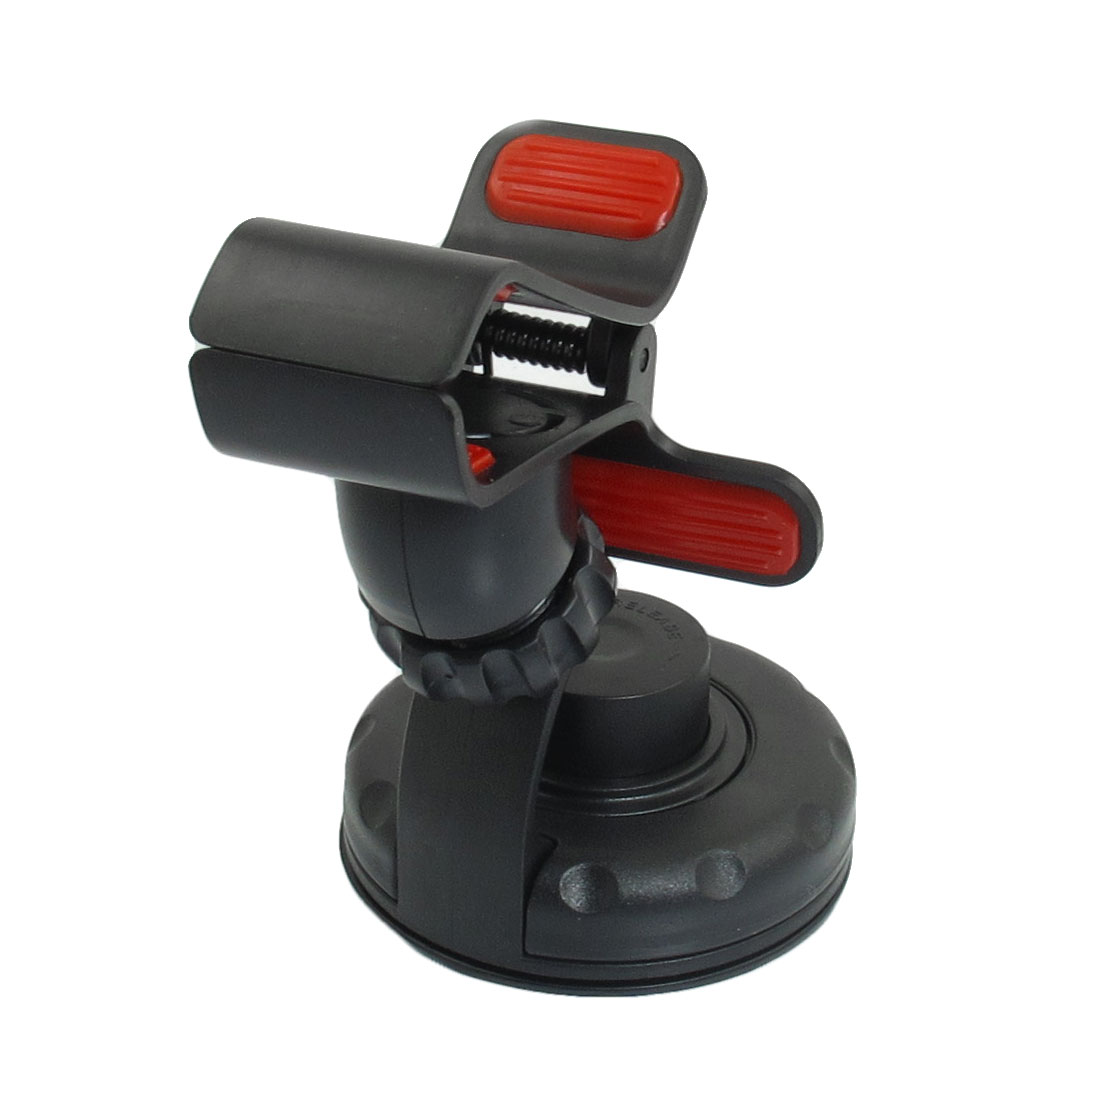 Universal Spring Design Rotatable Cupule Car Mobile PDA Mount Holder